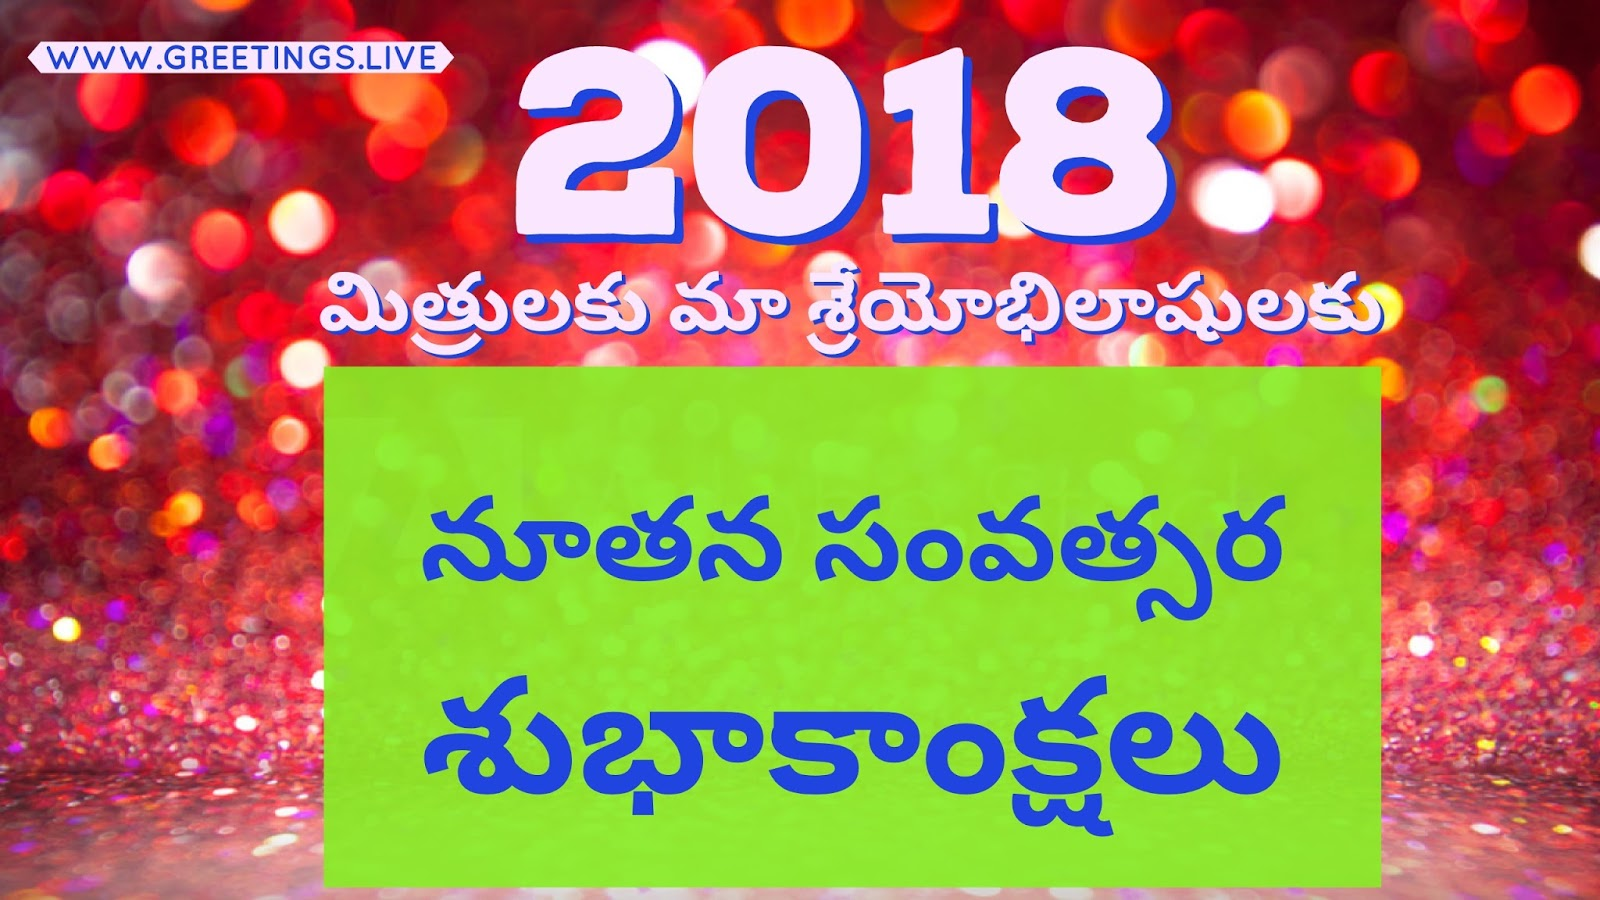 2018 new year wishes greetings new year wishes in telugu language new year wishes 2018 in telugu kristyandbryce Image collections